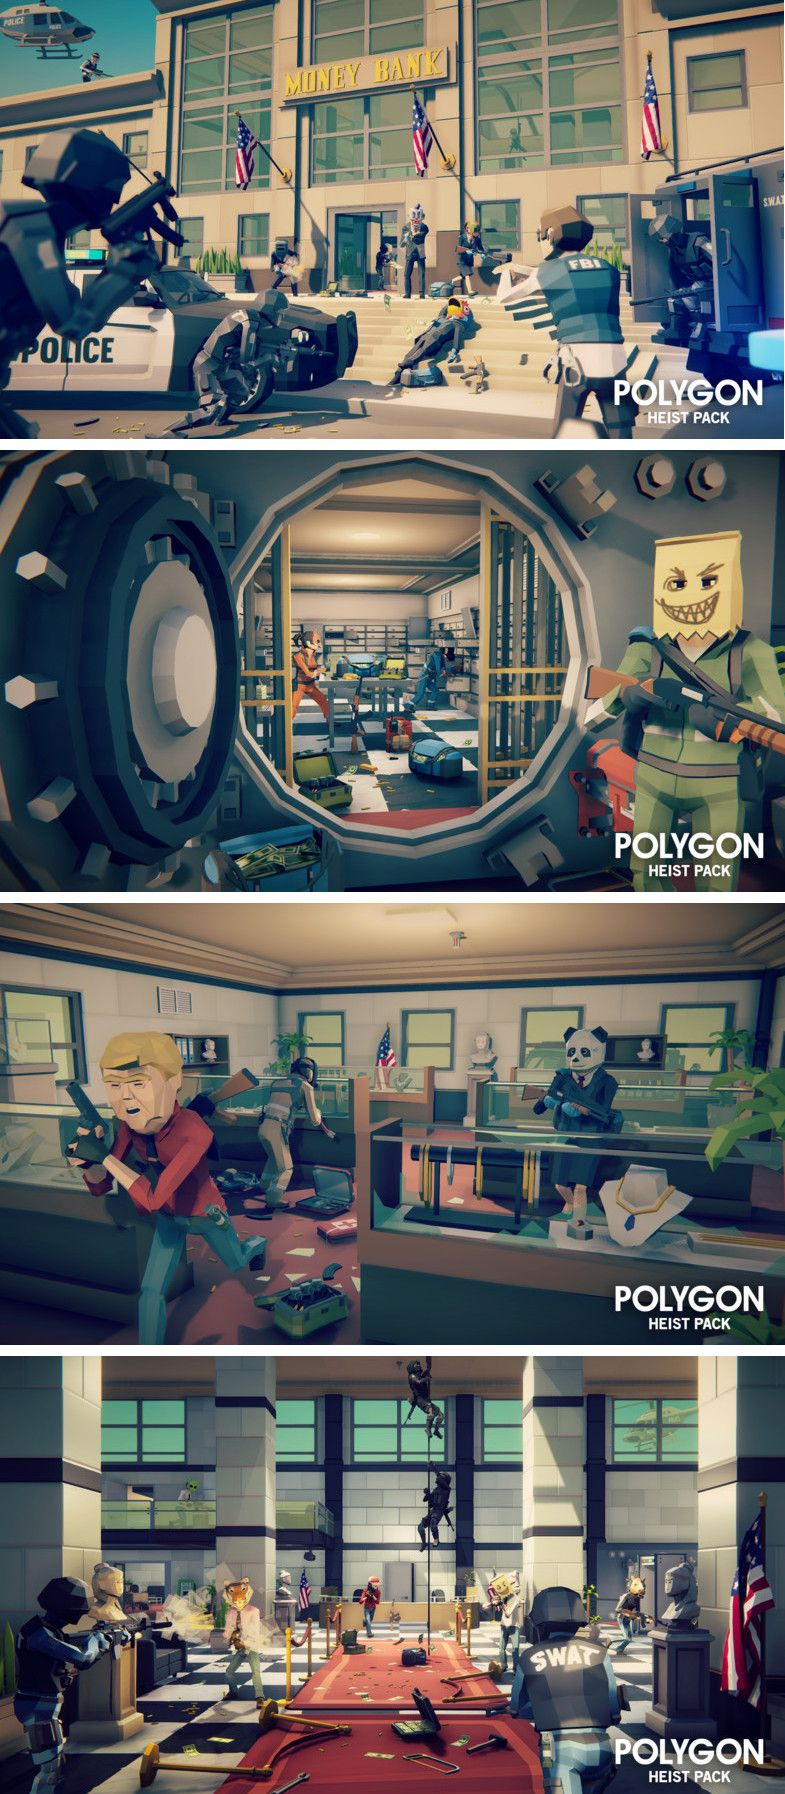 Polygon - Heist Pack #3D Models #Environments  A #low poly asset